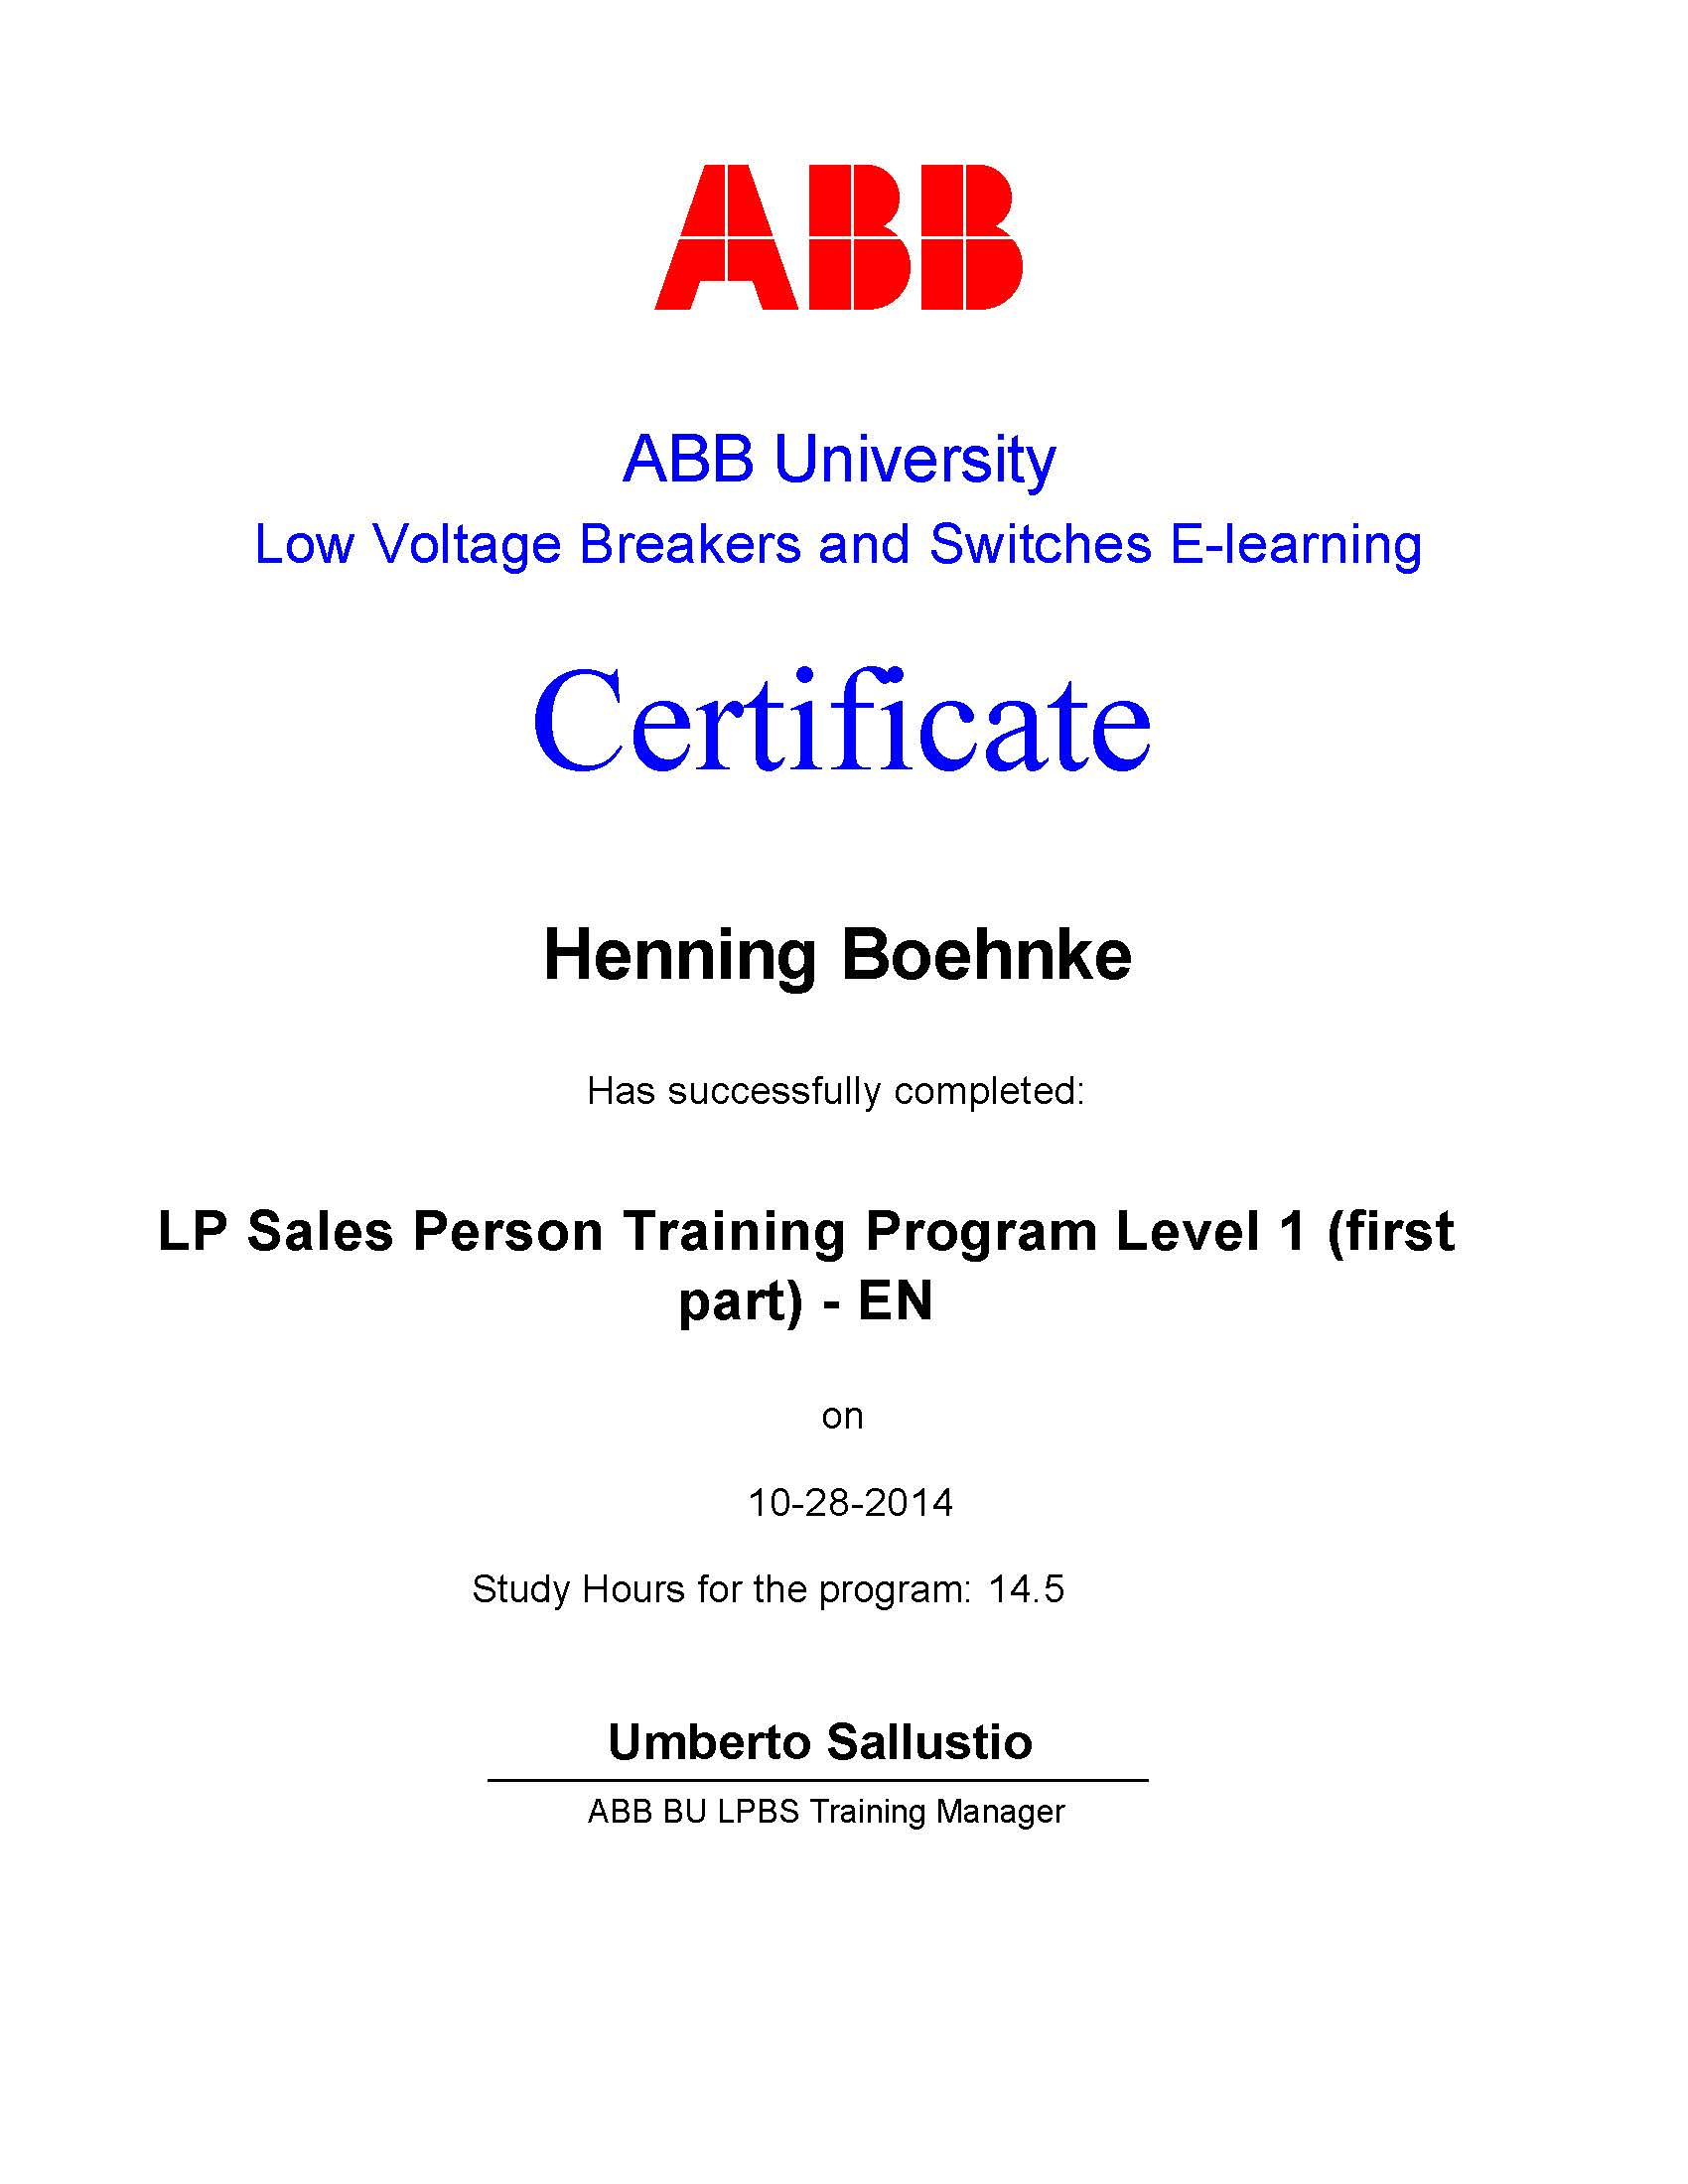 LP Sales Person Training Program Level 1 (First Part)